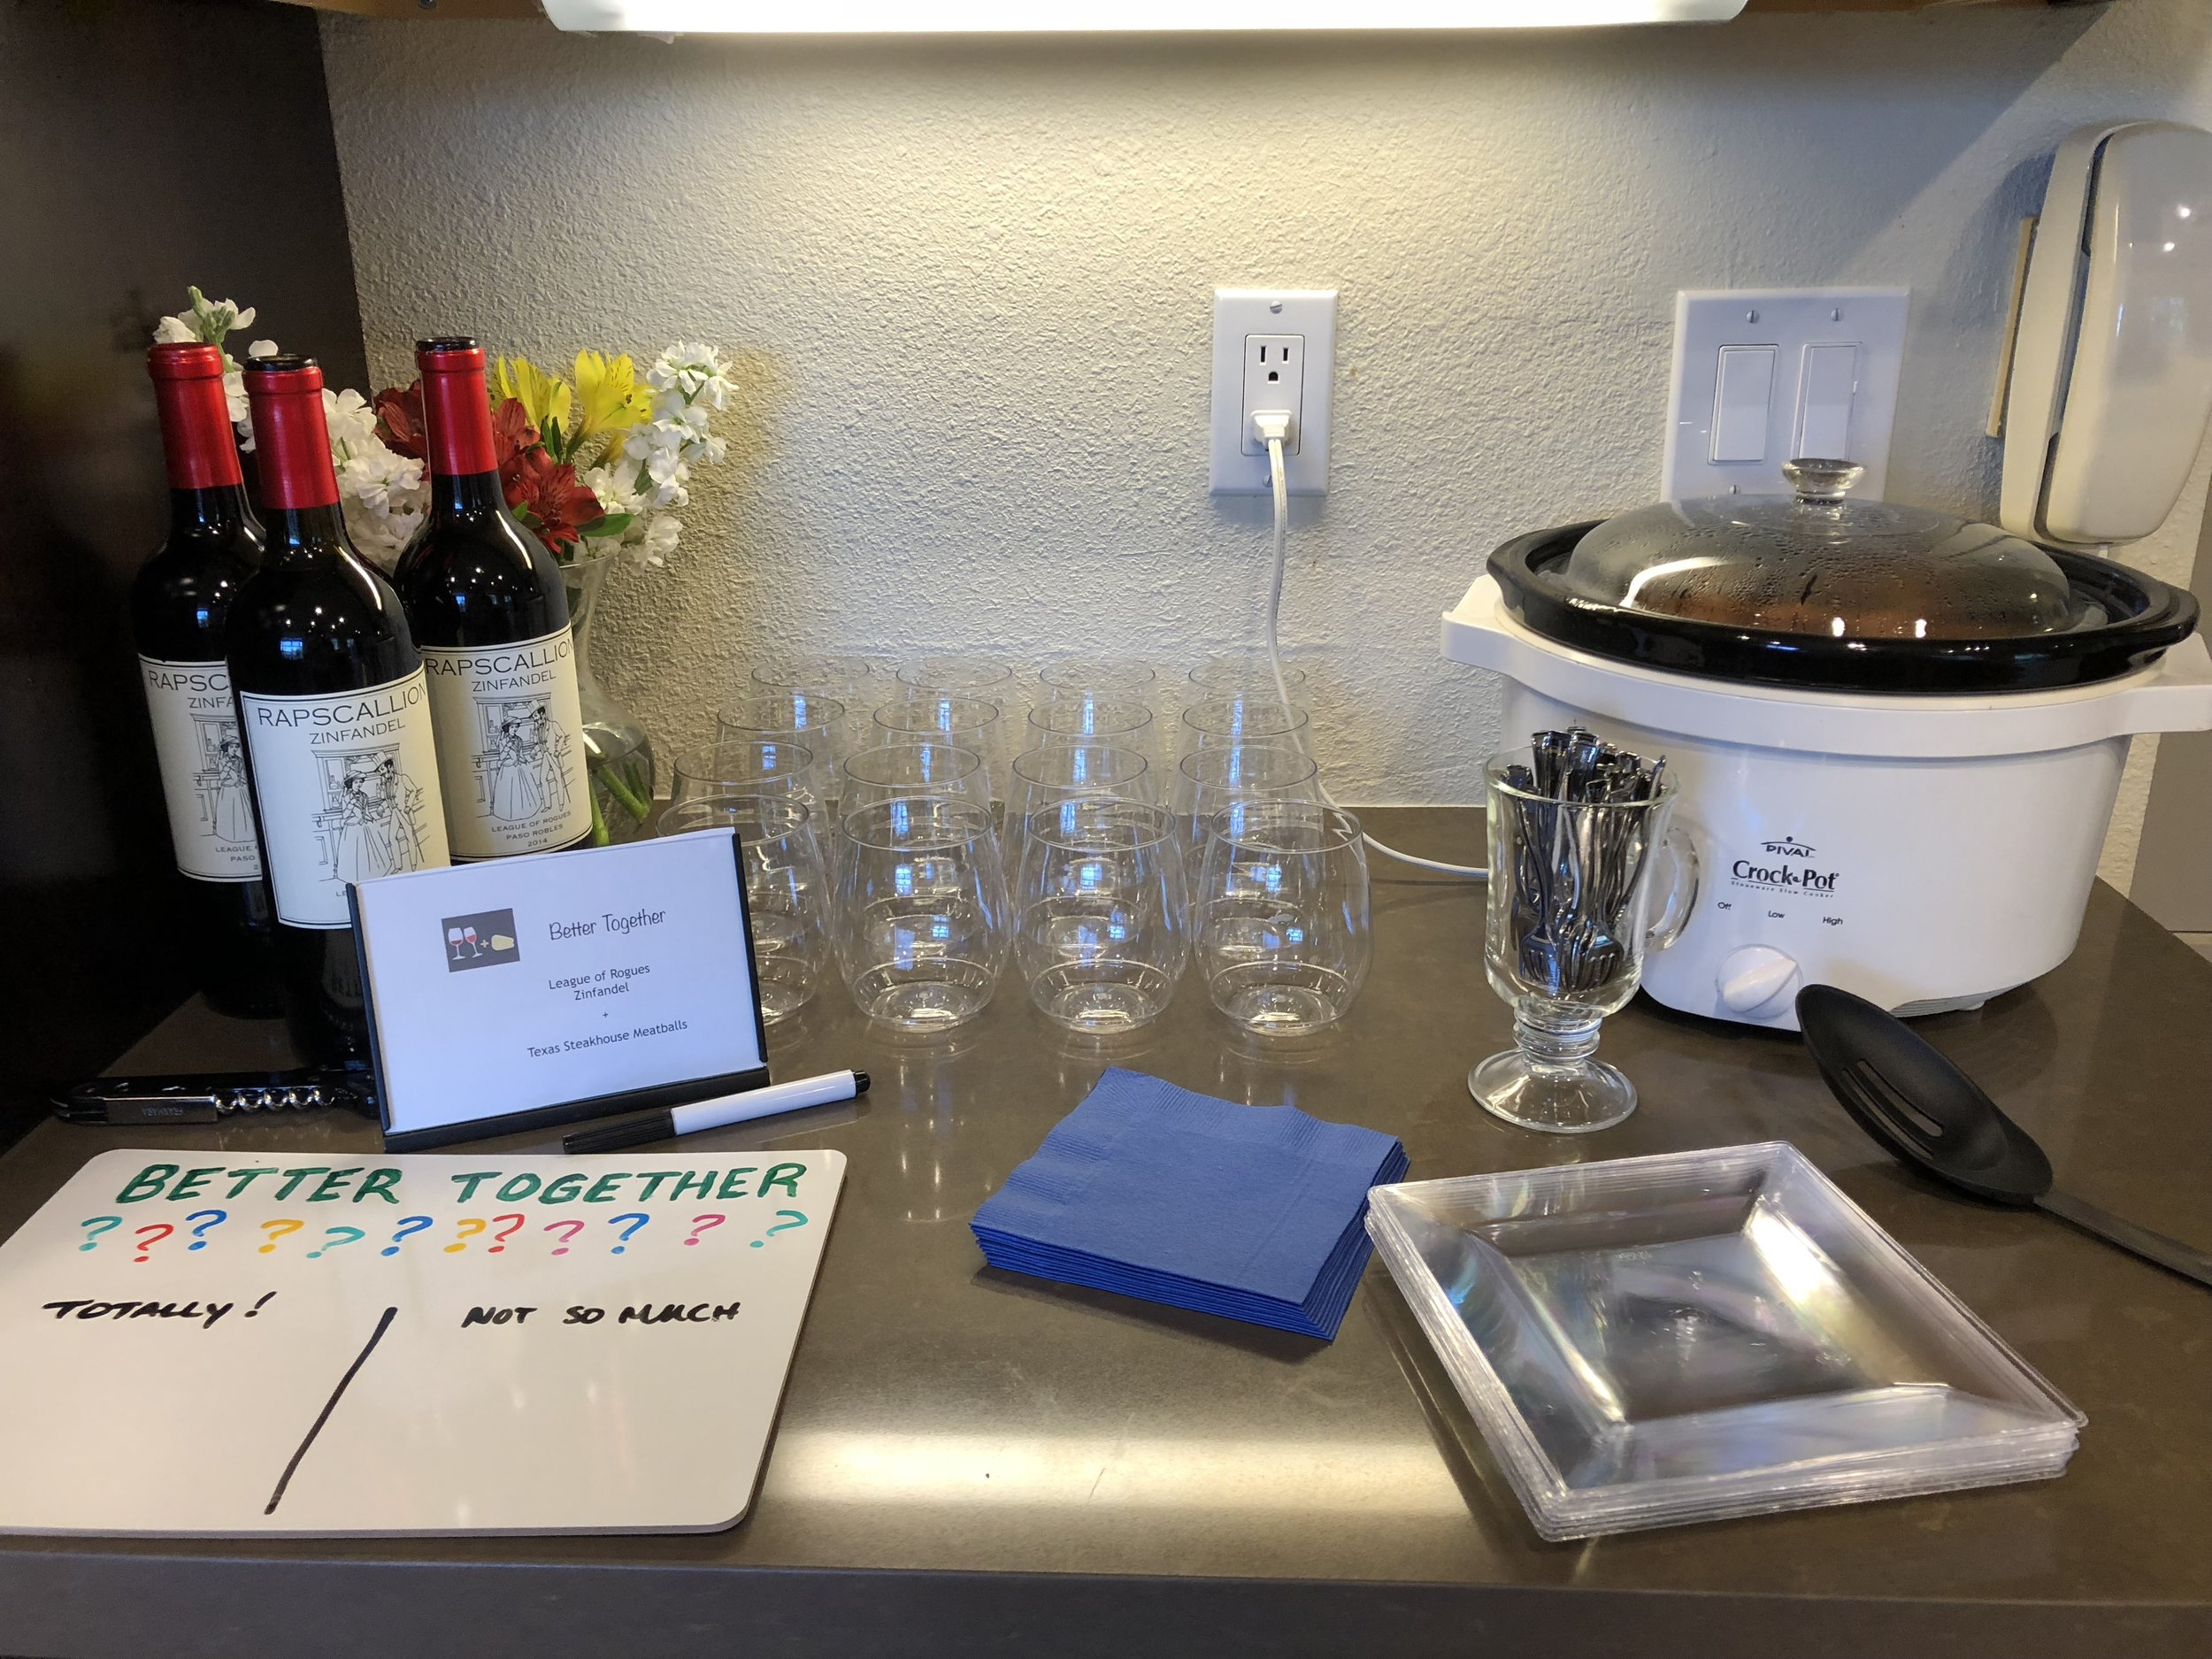 Zinfandel and meatball pairing station for the Better Together party